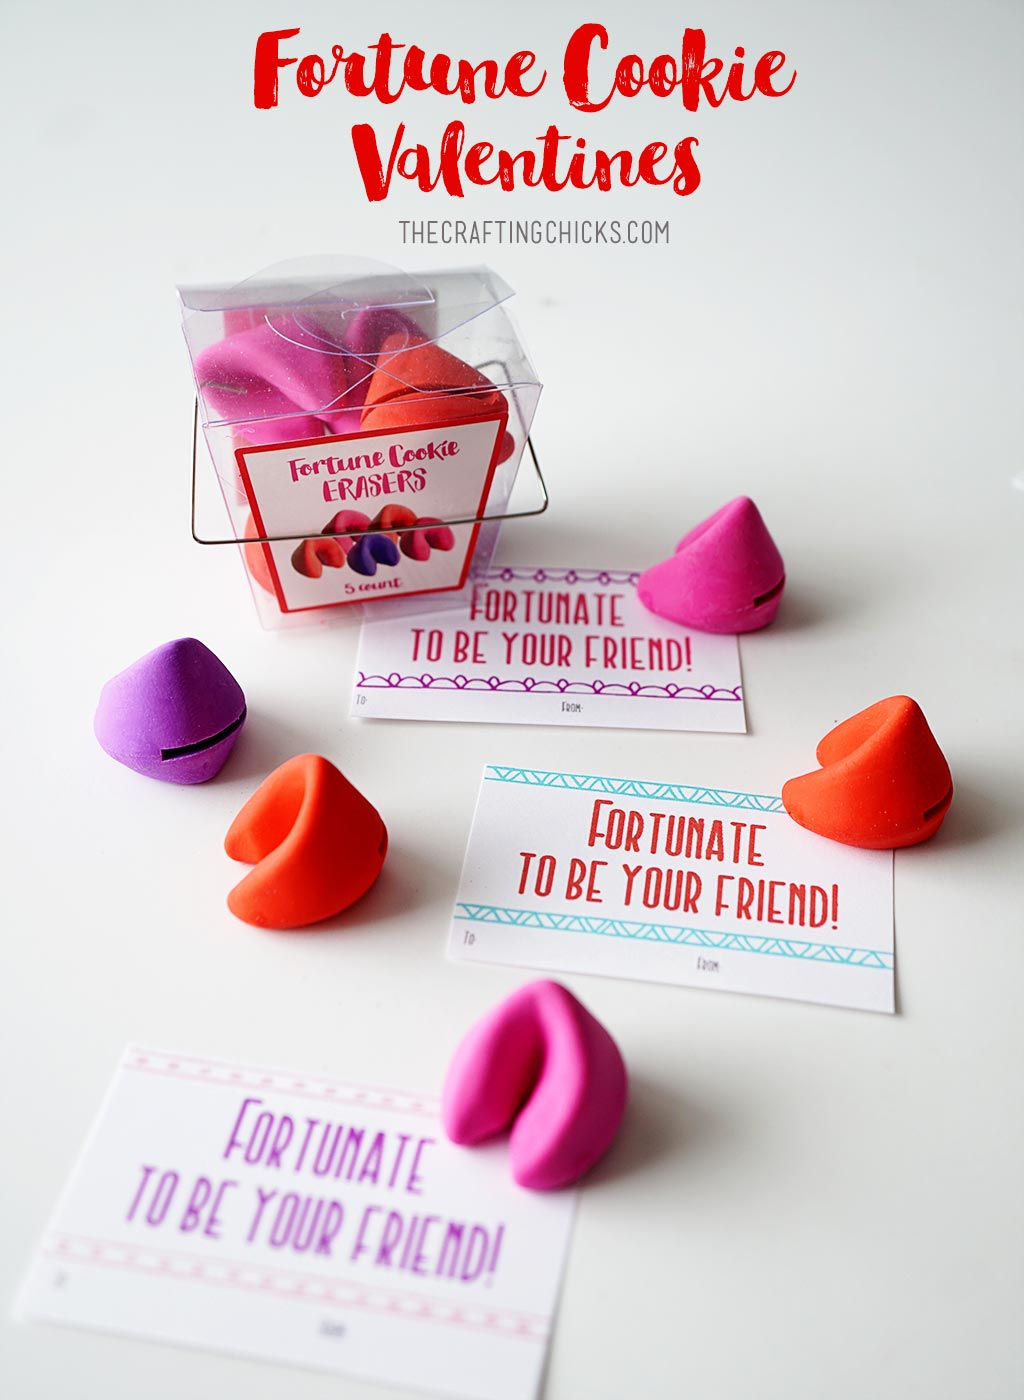 Fortune Cookie Valentine Printable - A fun valentine gift idea.